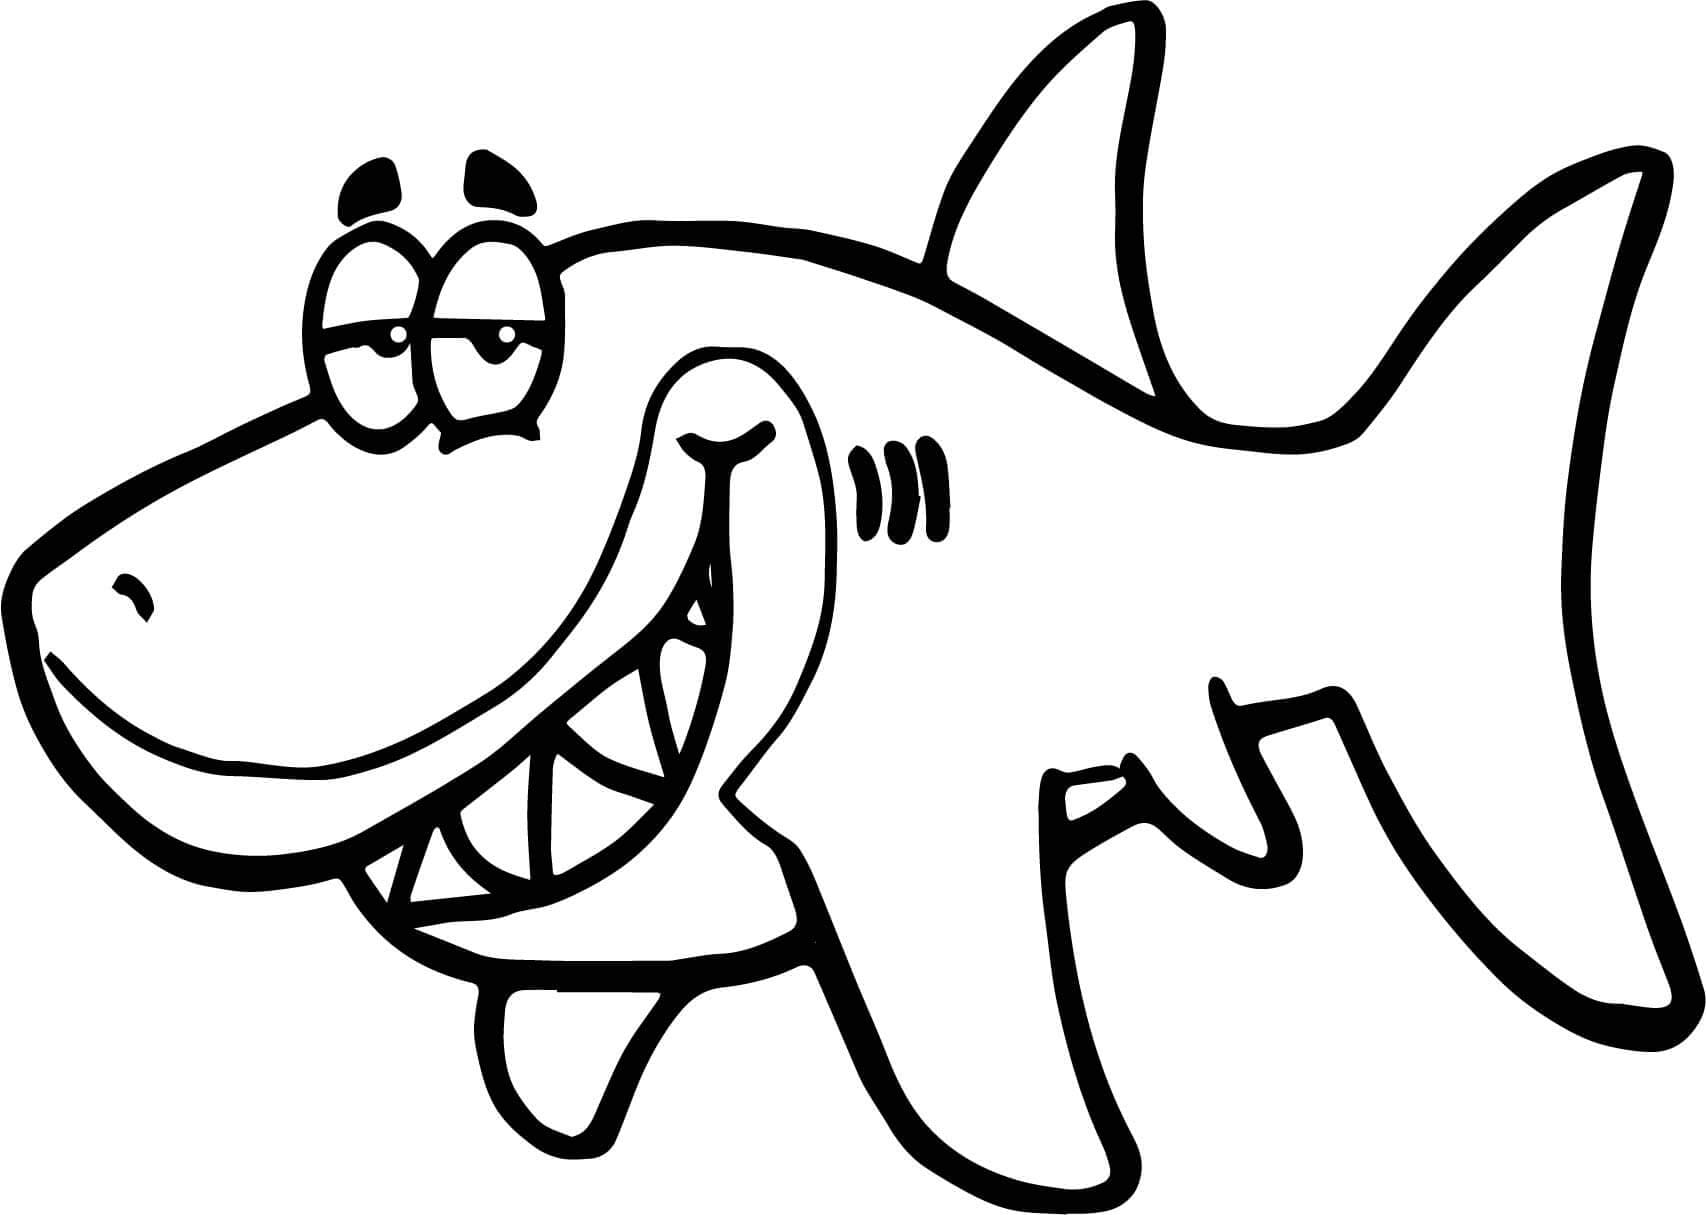 Pictures of sharks to colour